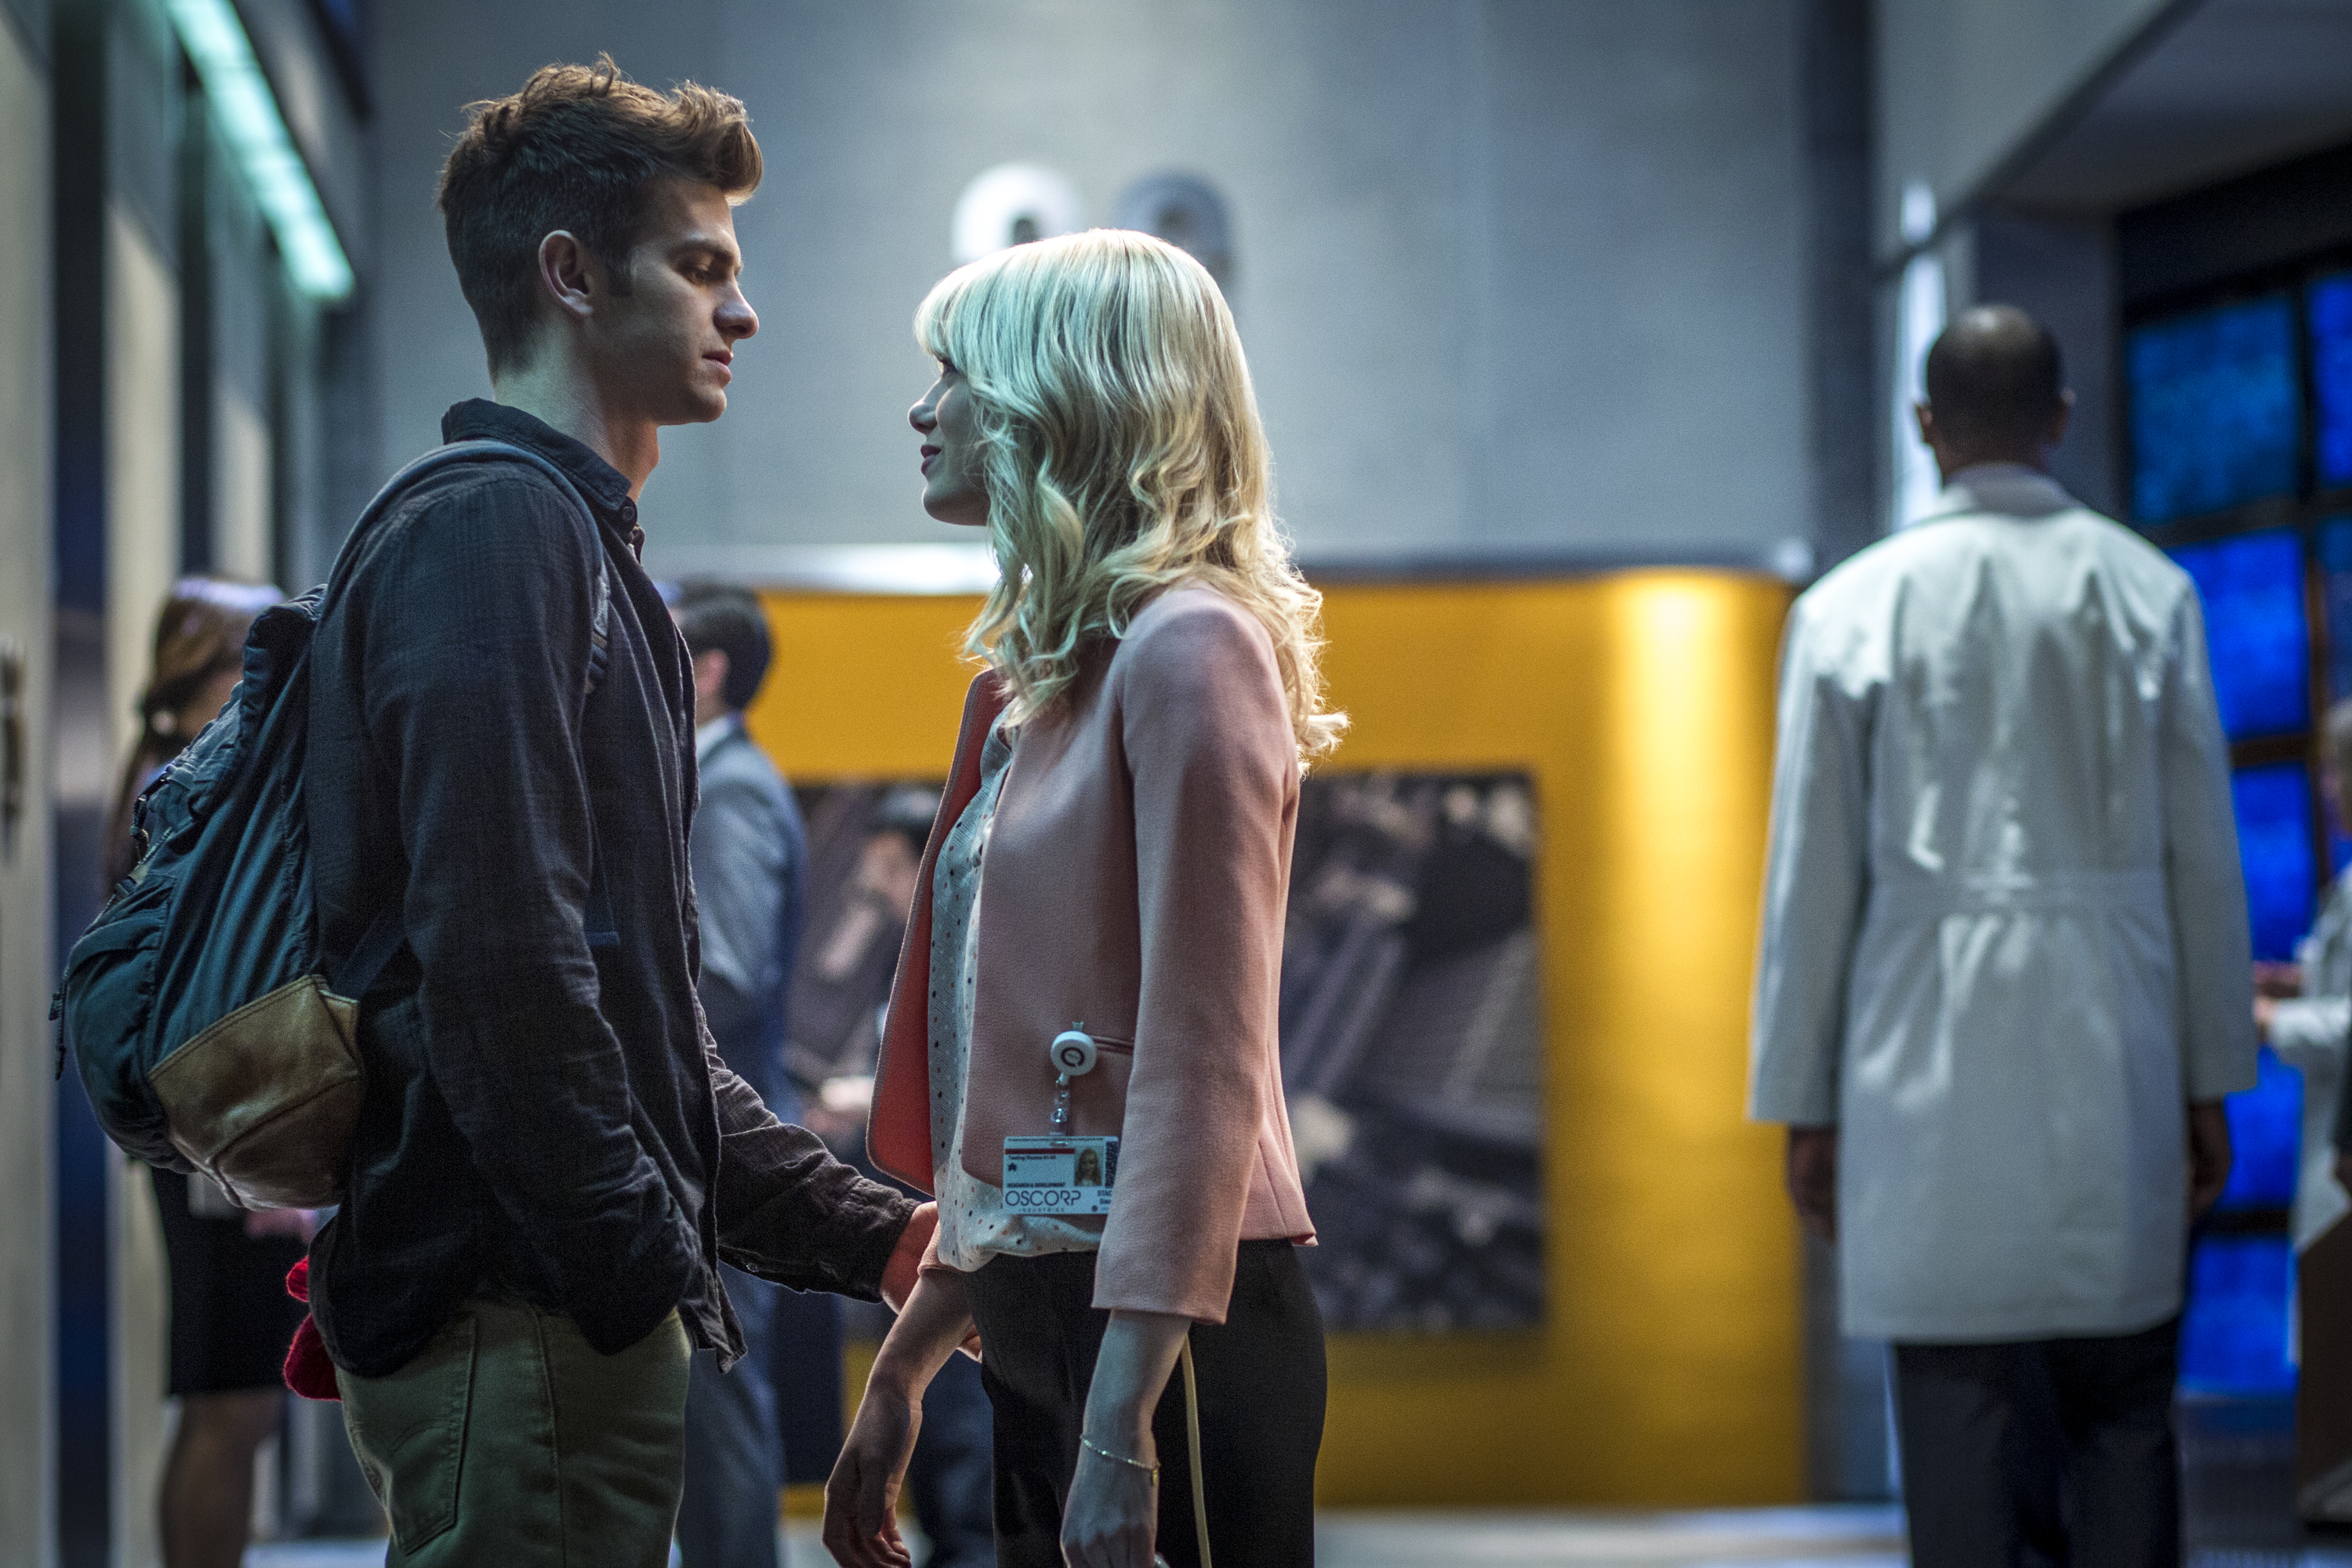 Andrew Garfield and Emma Stone star in Columbia Pictures' The Amazing Spider-Man 2.